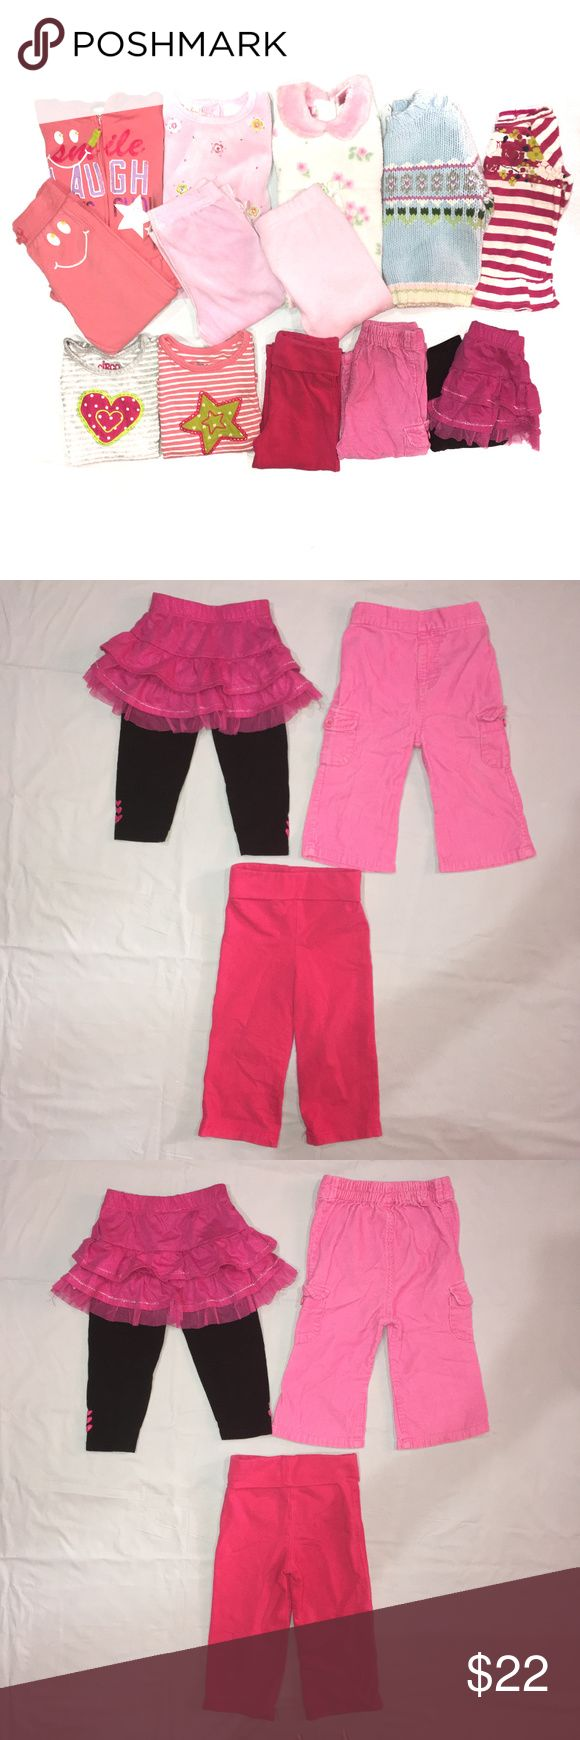 Girls Size 18M Mixed Winter Bundle Girls size 18m mixed winter bundle. Includes 2 pairs of pants, 1 skirt with tights, 3 long sleeve shirts, 1 sweater and 3 long sleeve/pants outfits. Brands include Circo, Genuine Kids from Osh Kosh, Gap, Candy Girl and more. All are in good condition but one outfit does have a couple marks as pictured. No trades, offers welcome! Circo Matching Sets